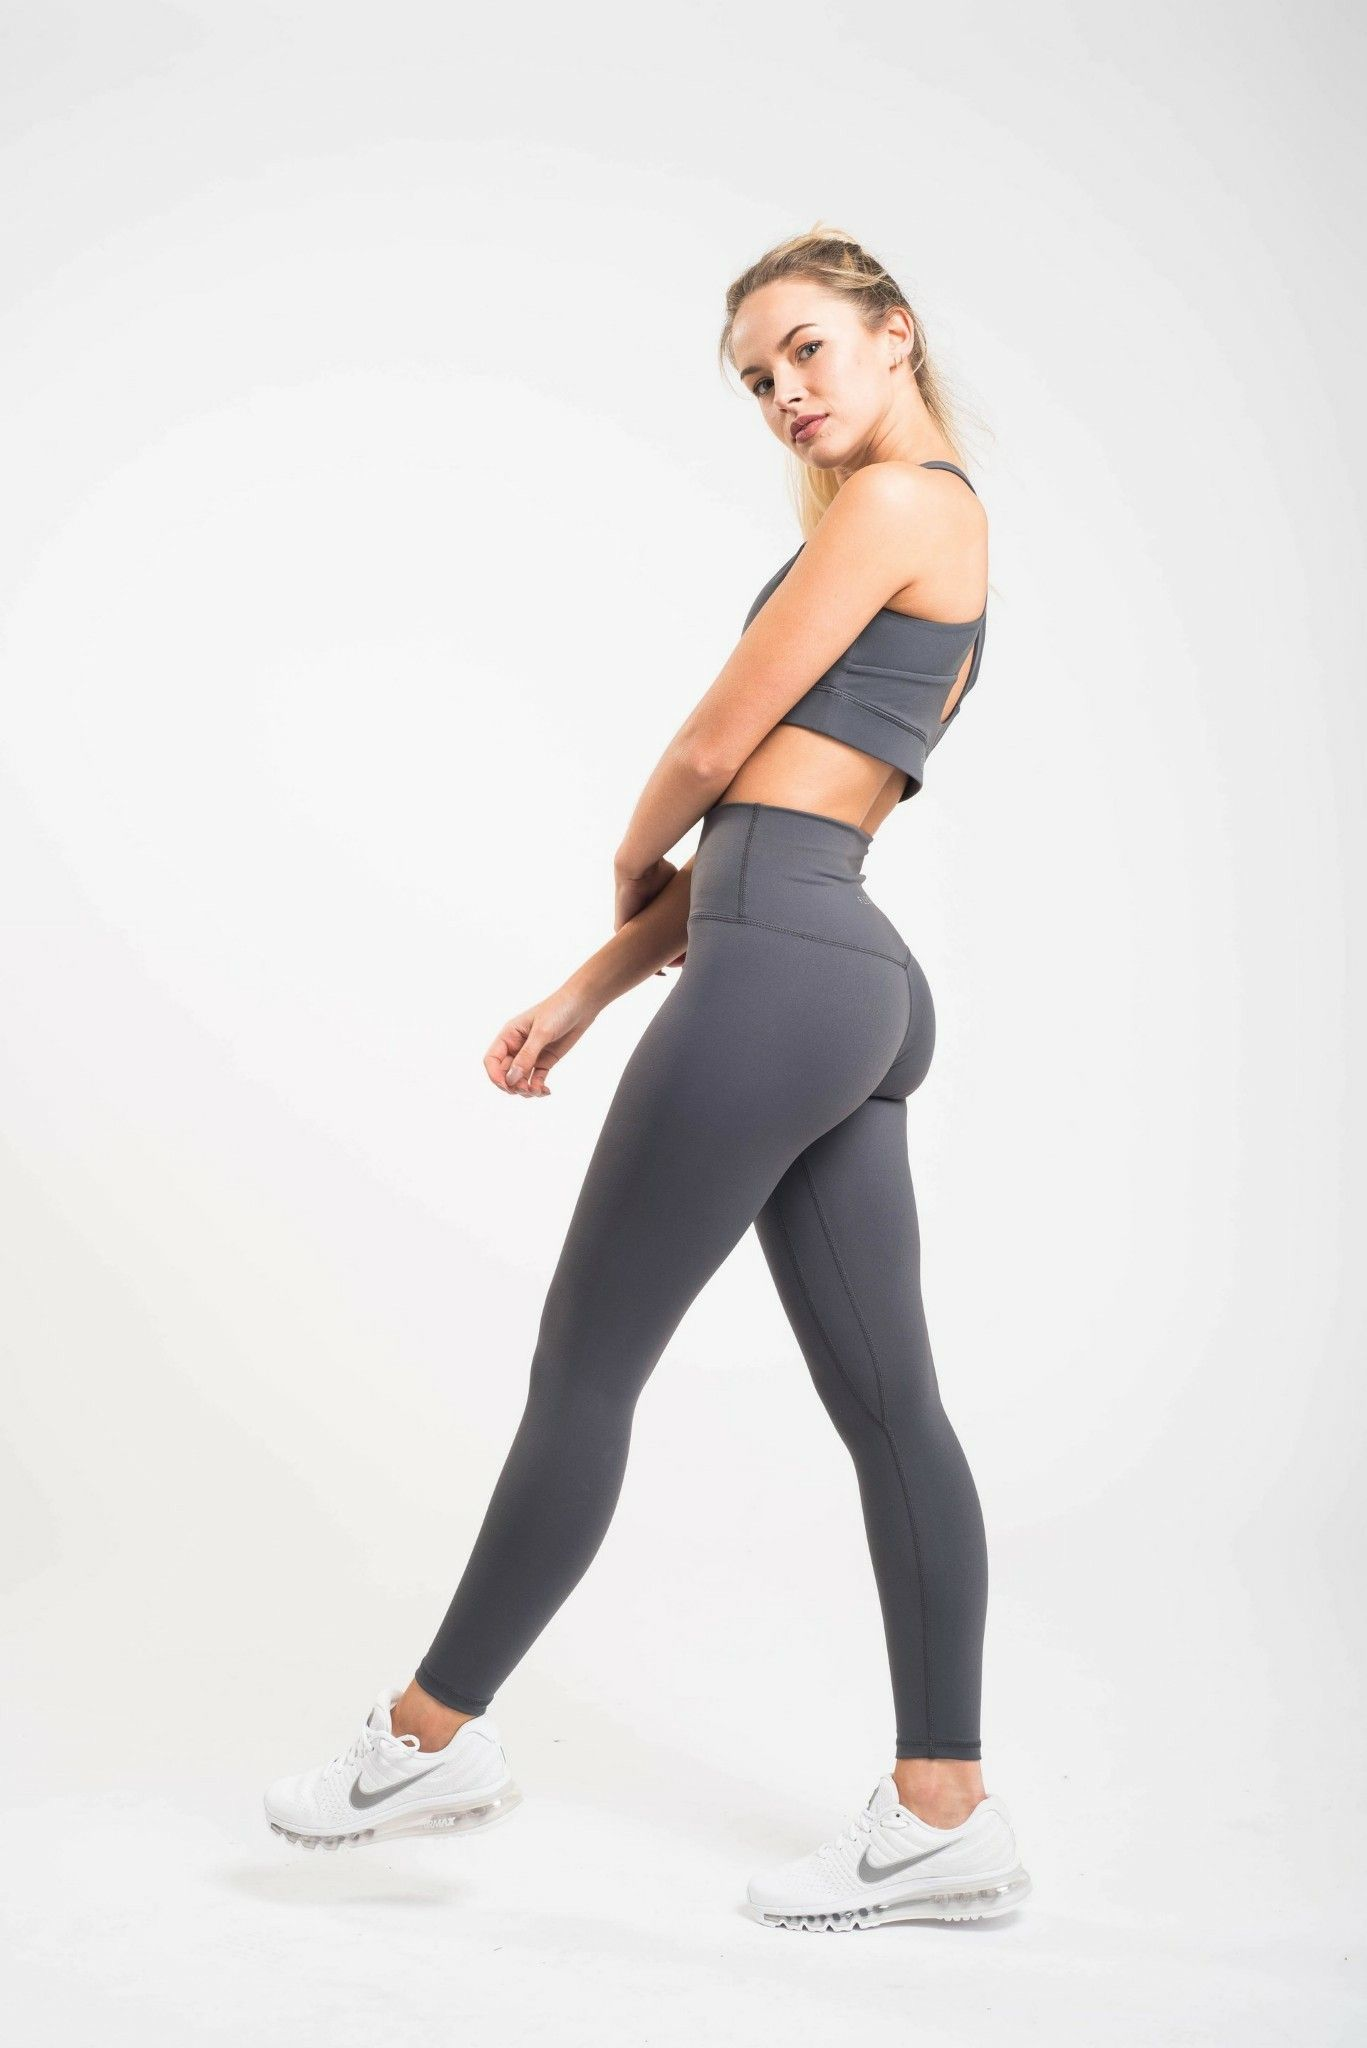 5b5e2cb1e3 Luxe leggings steel grey $42 flexxfit | Fitness Shop | Leggings ...